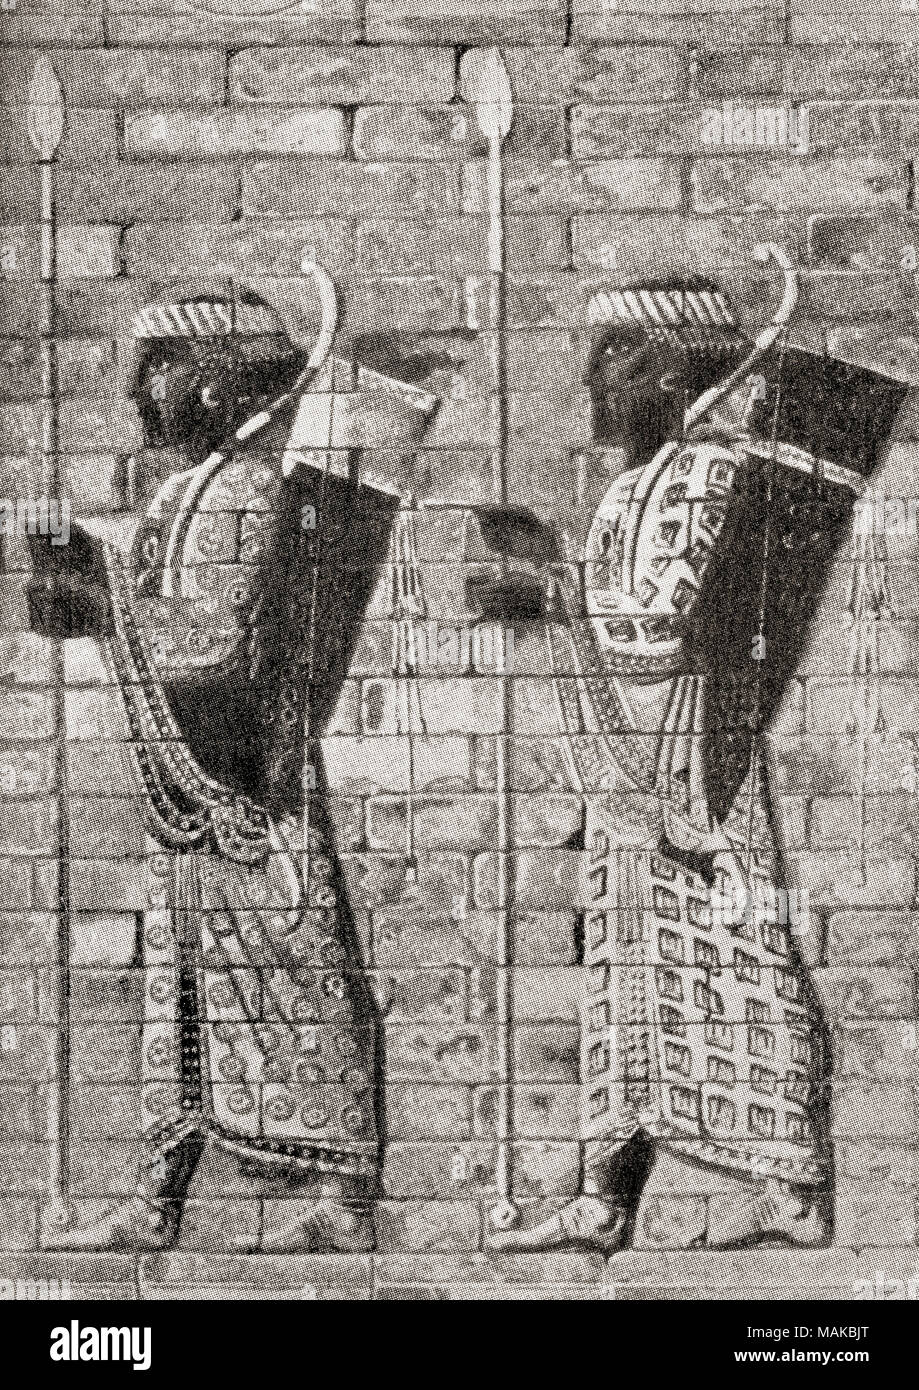 Ancient archers from a frieze at Susa, Persia.  From Hutchinson's History of the Nations, published 1915 - Stock Image